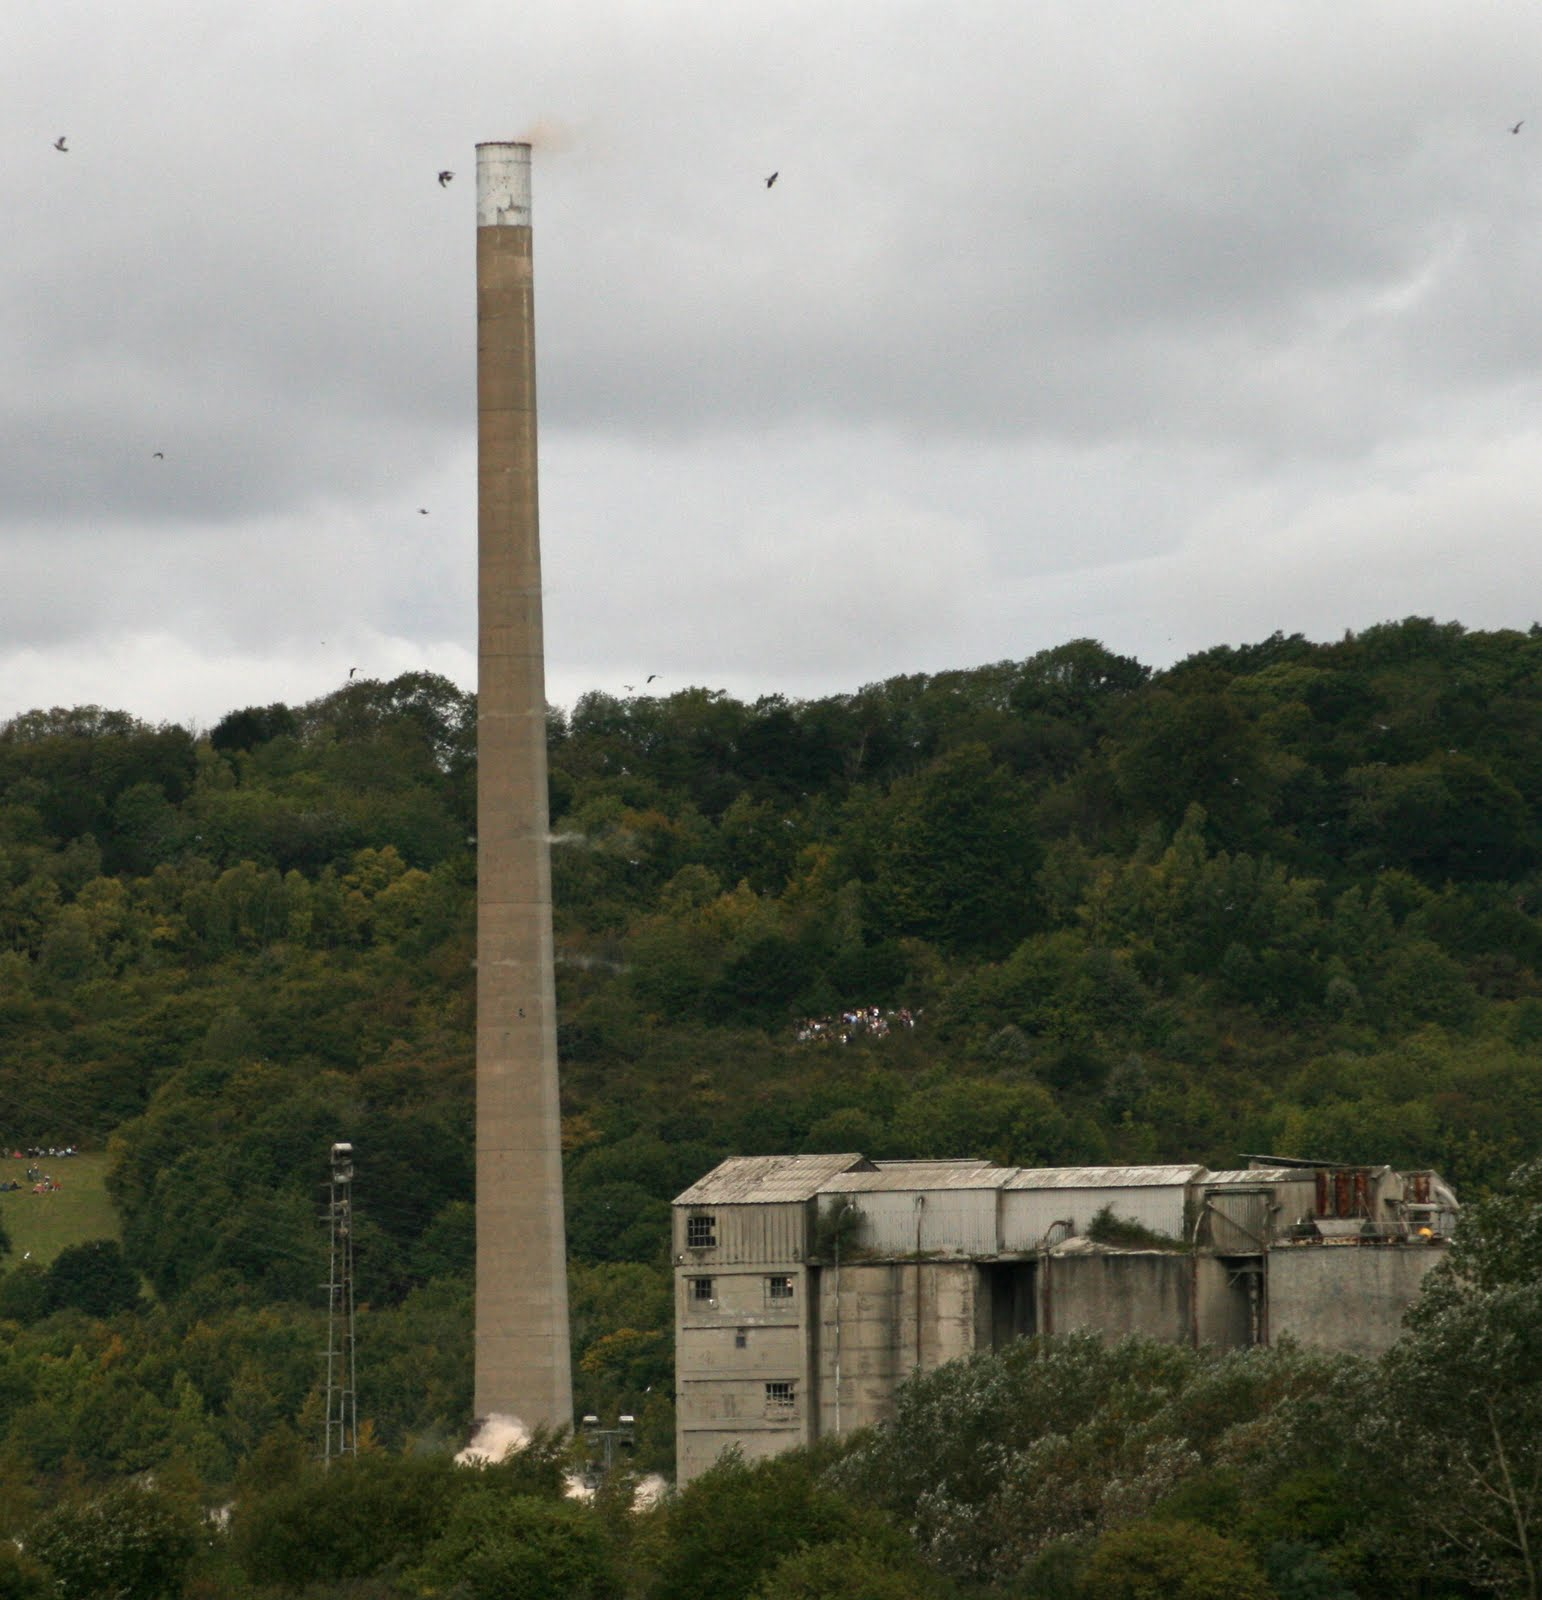 Kent Today & Yesterday: Demolition Of Rugby / Cemex Cement